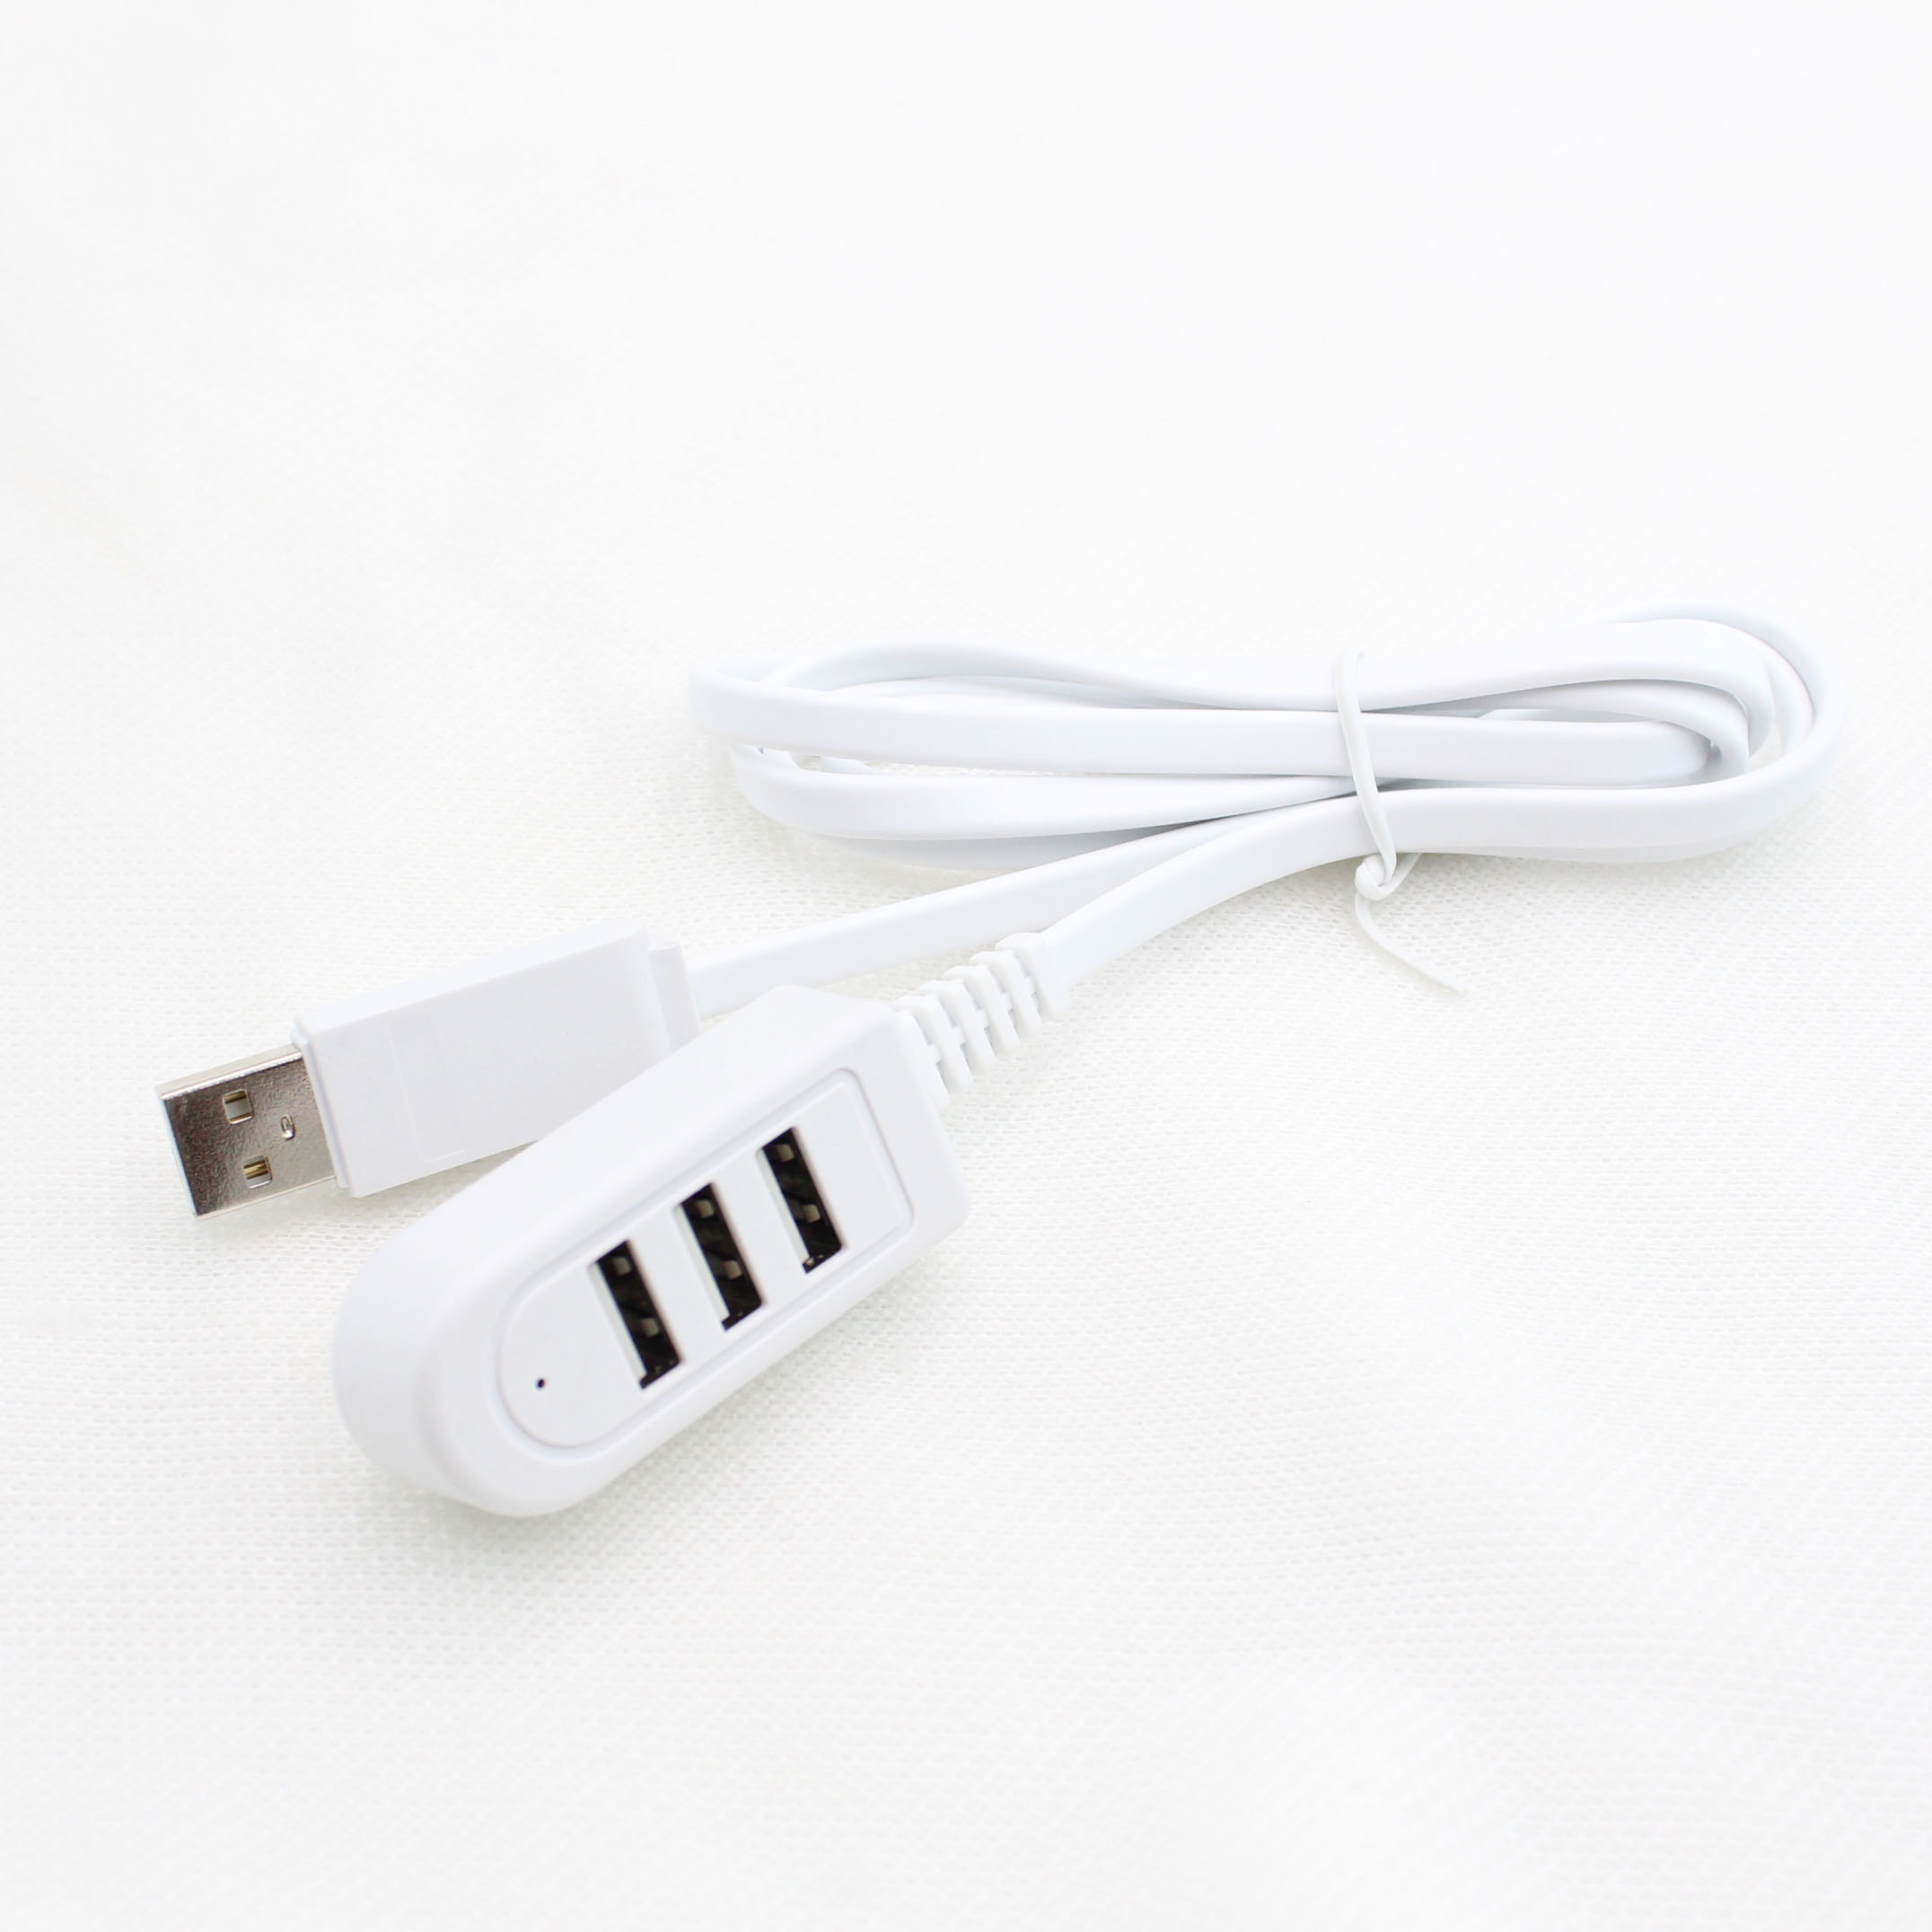 Three USB ports charging cable